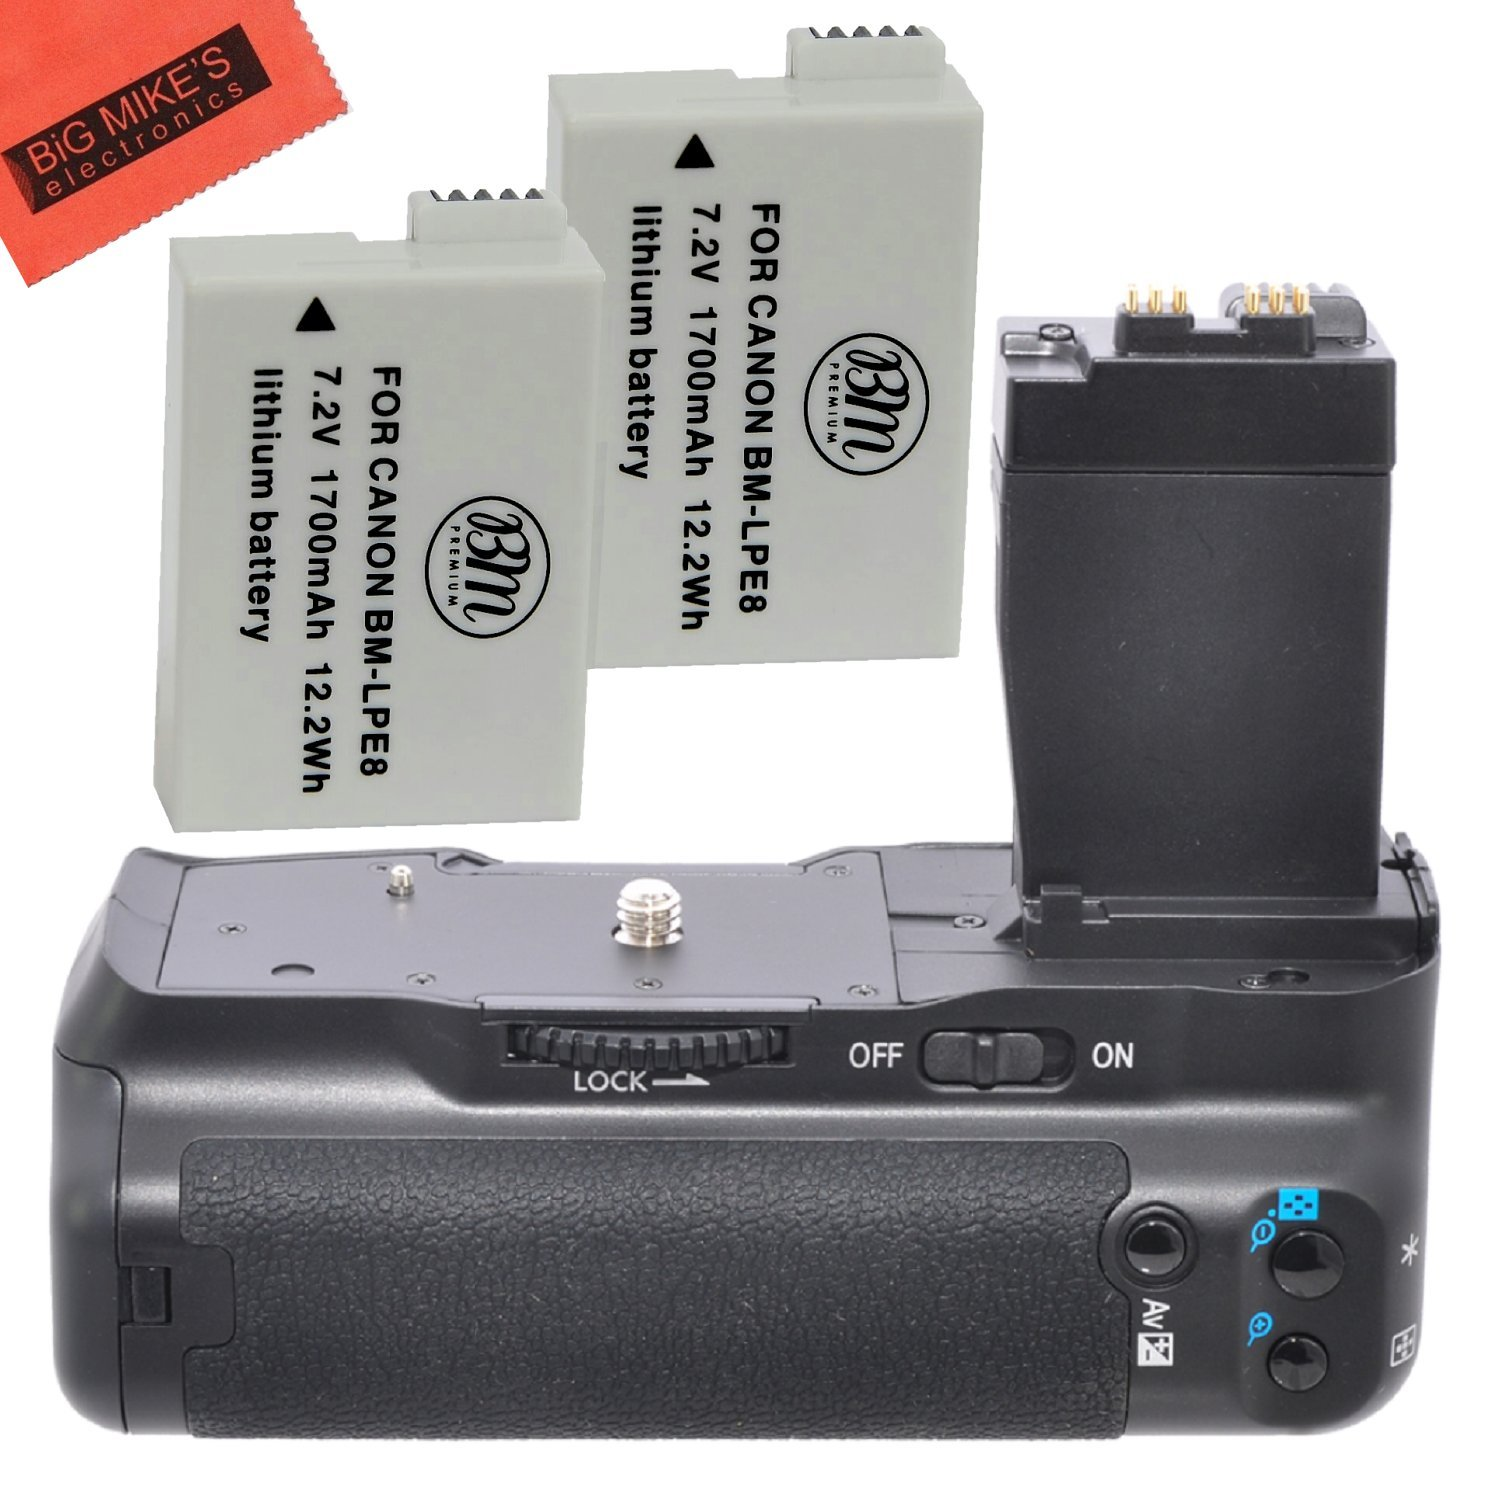 Battery Grip Kit for Canon Rebel T2i T3i T4i T5i Digital SLR Camera Includes Qty 2 Replacement LP-E8 Batteries + Vertical Battery Grip + More!! by Big Mike's